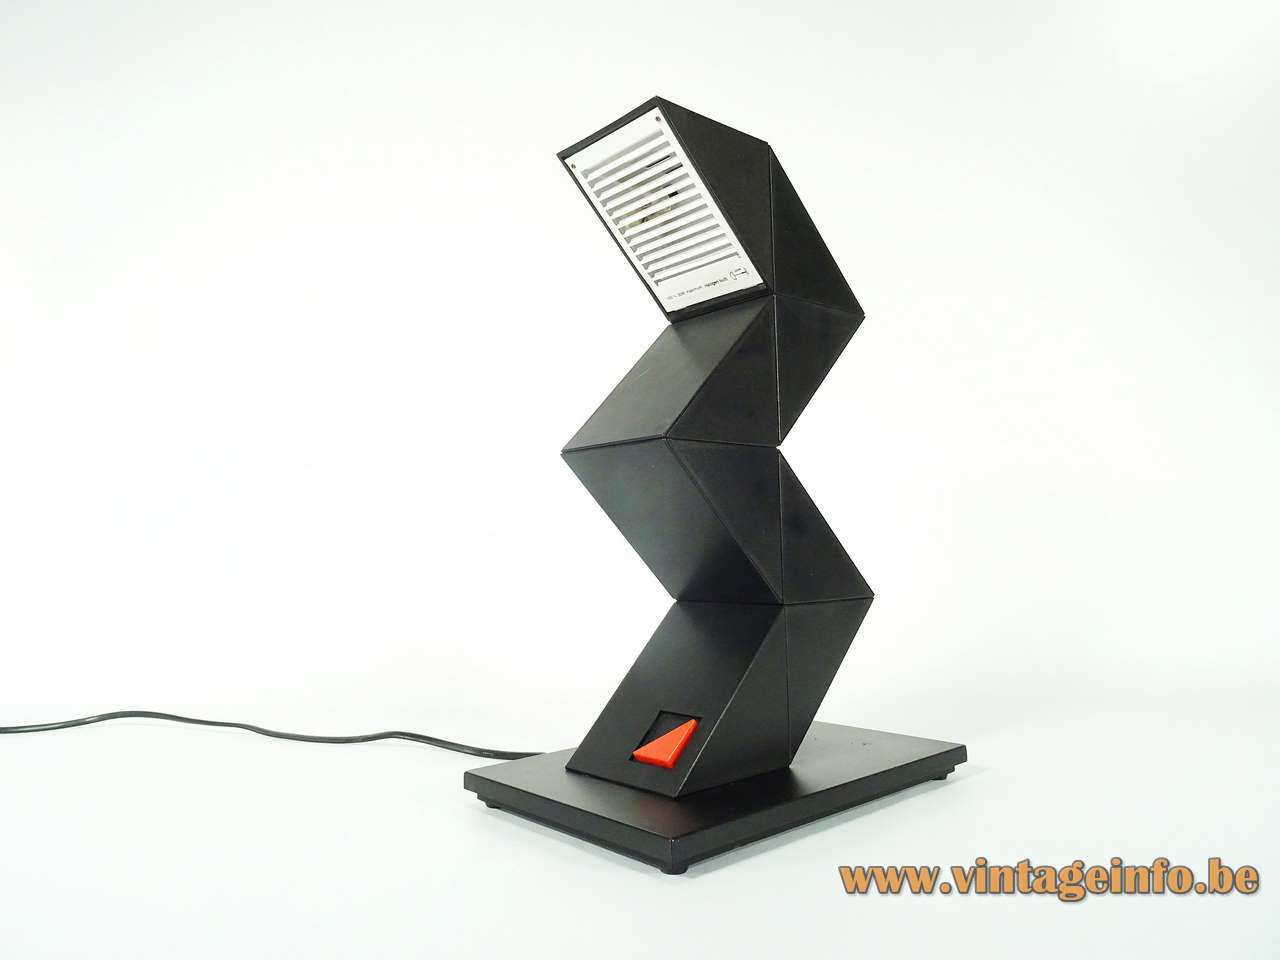 Zig Zag desk lamp black plastic adjustable light 1984 design: Shui Chan Massive E-Lite Z-lite 1980s